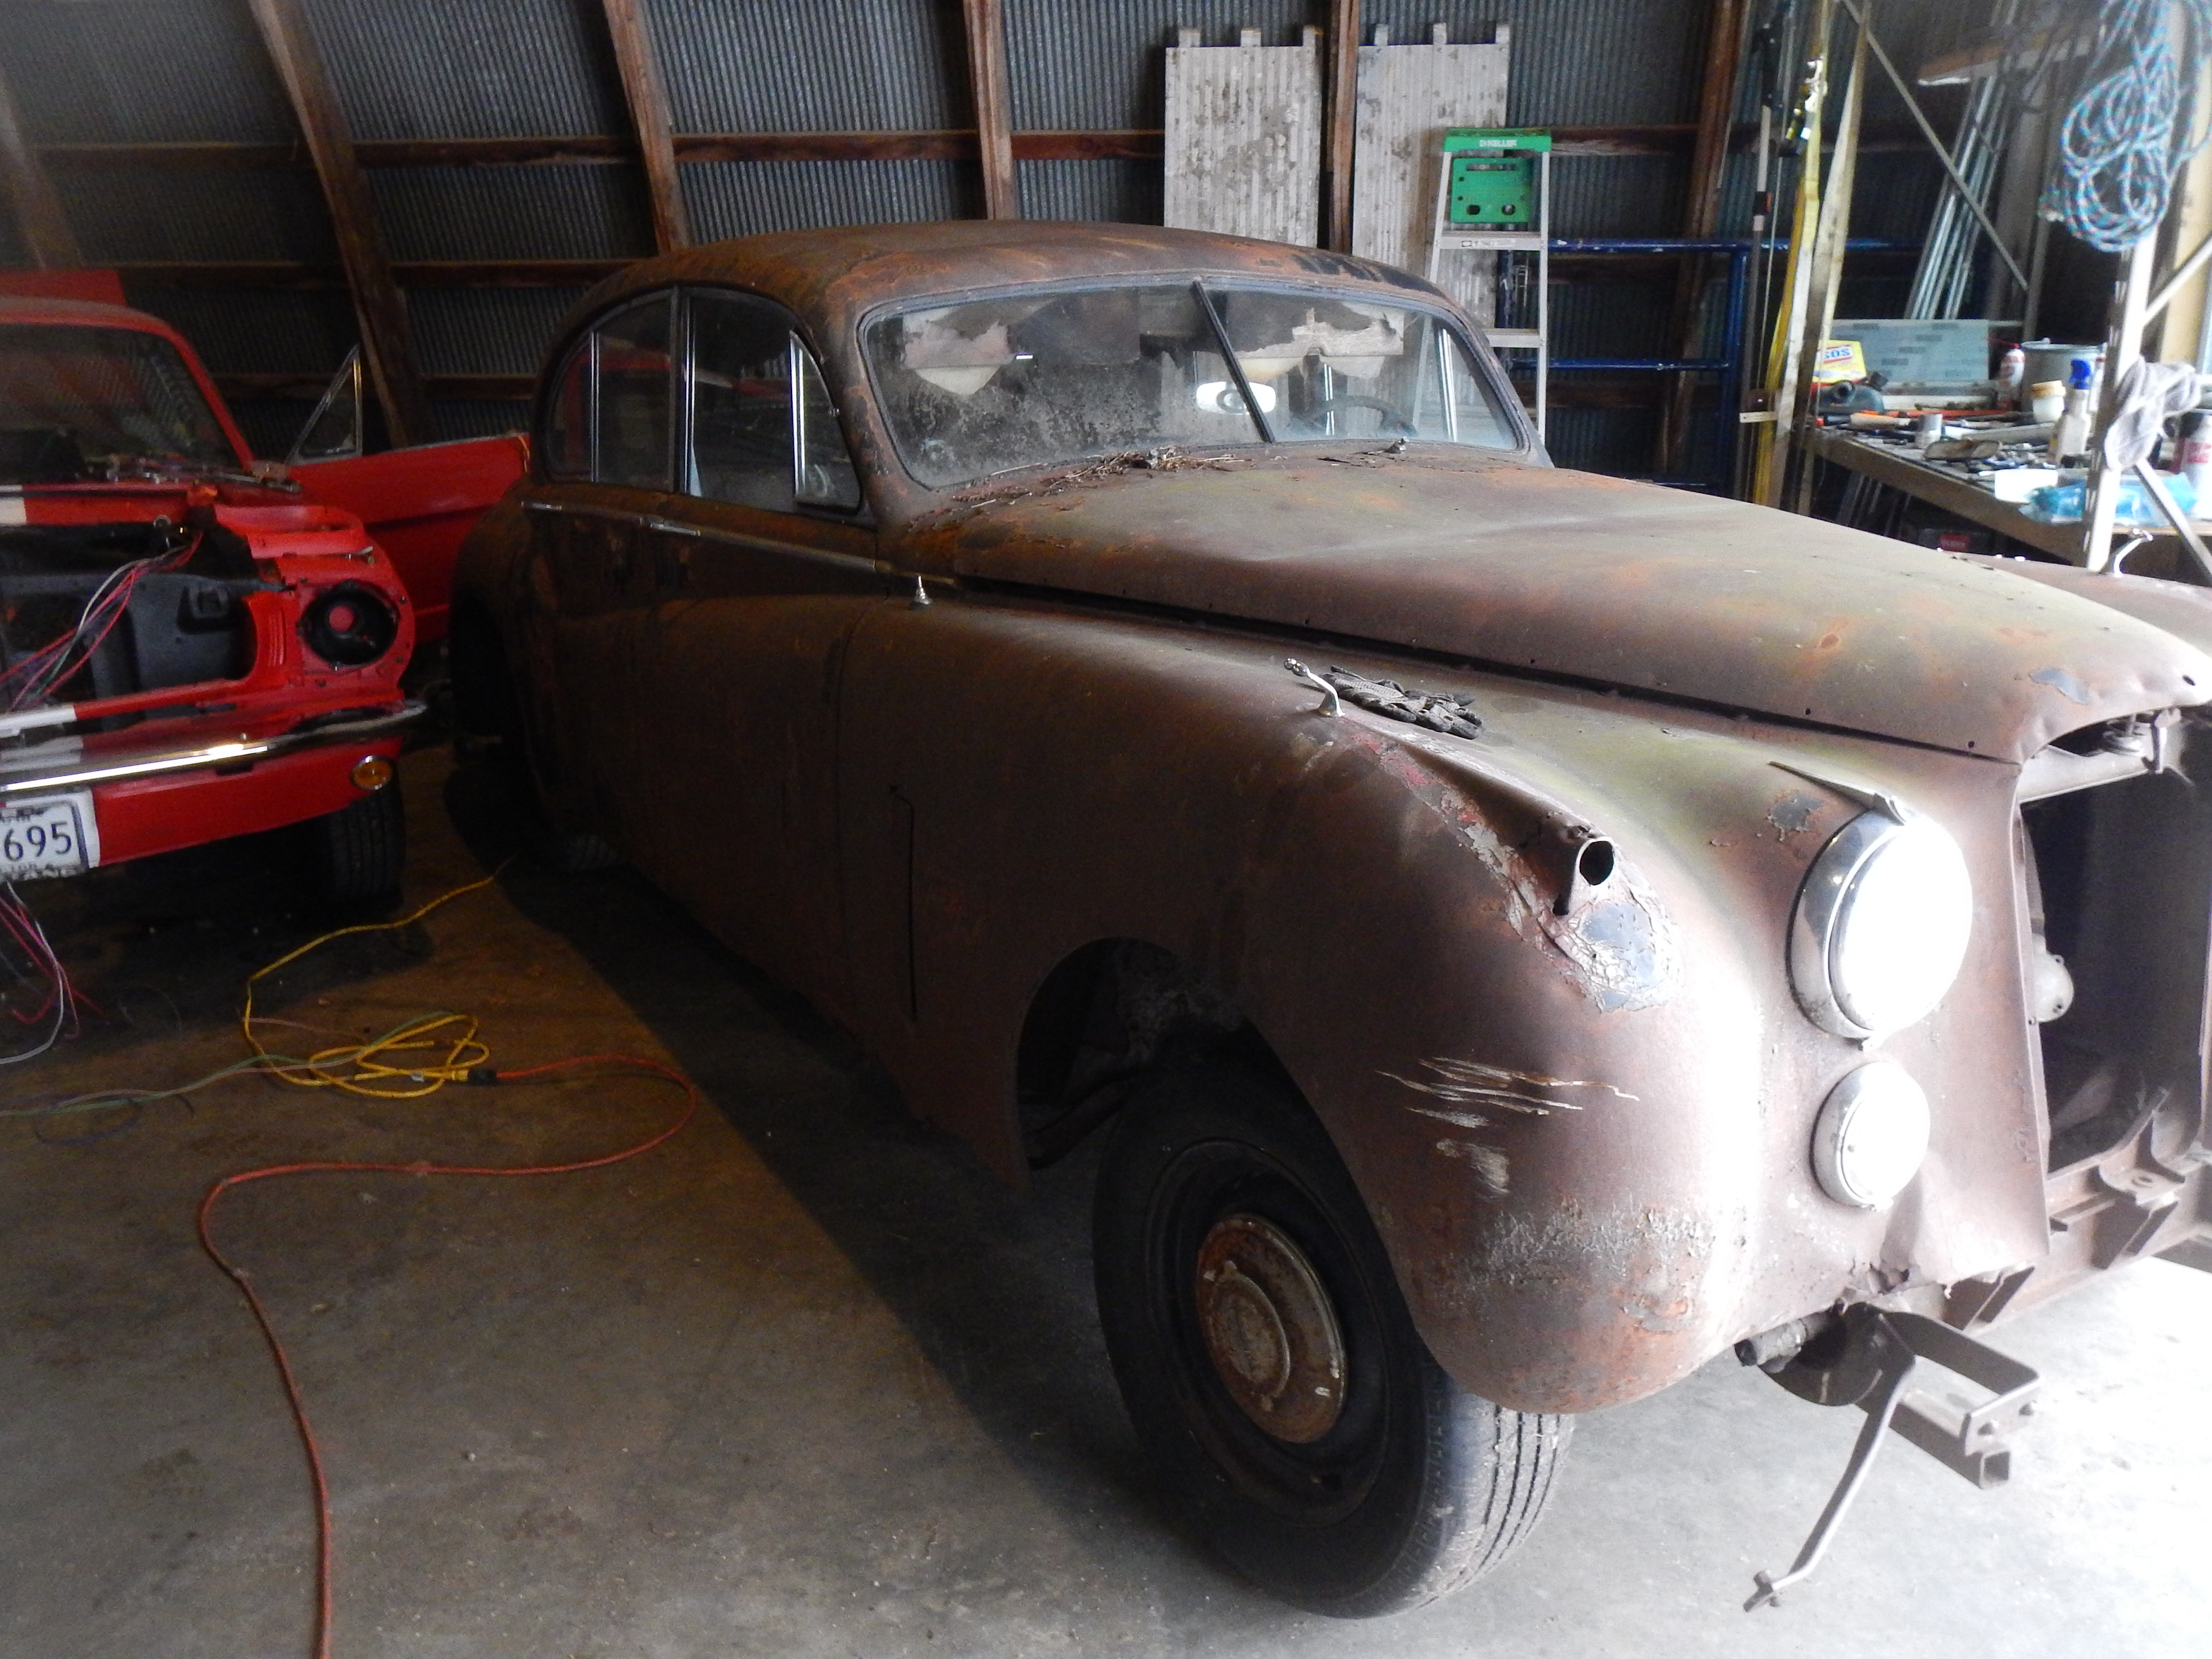 Jaguar Mark Vii Convertable Antique Car Wire Harness In Its New Home Out Of The Weather Waiting For More Attention Sitting Beside A Mustang Getting